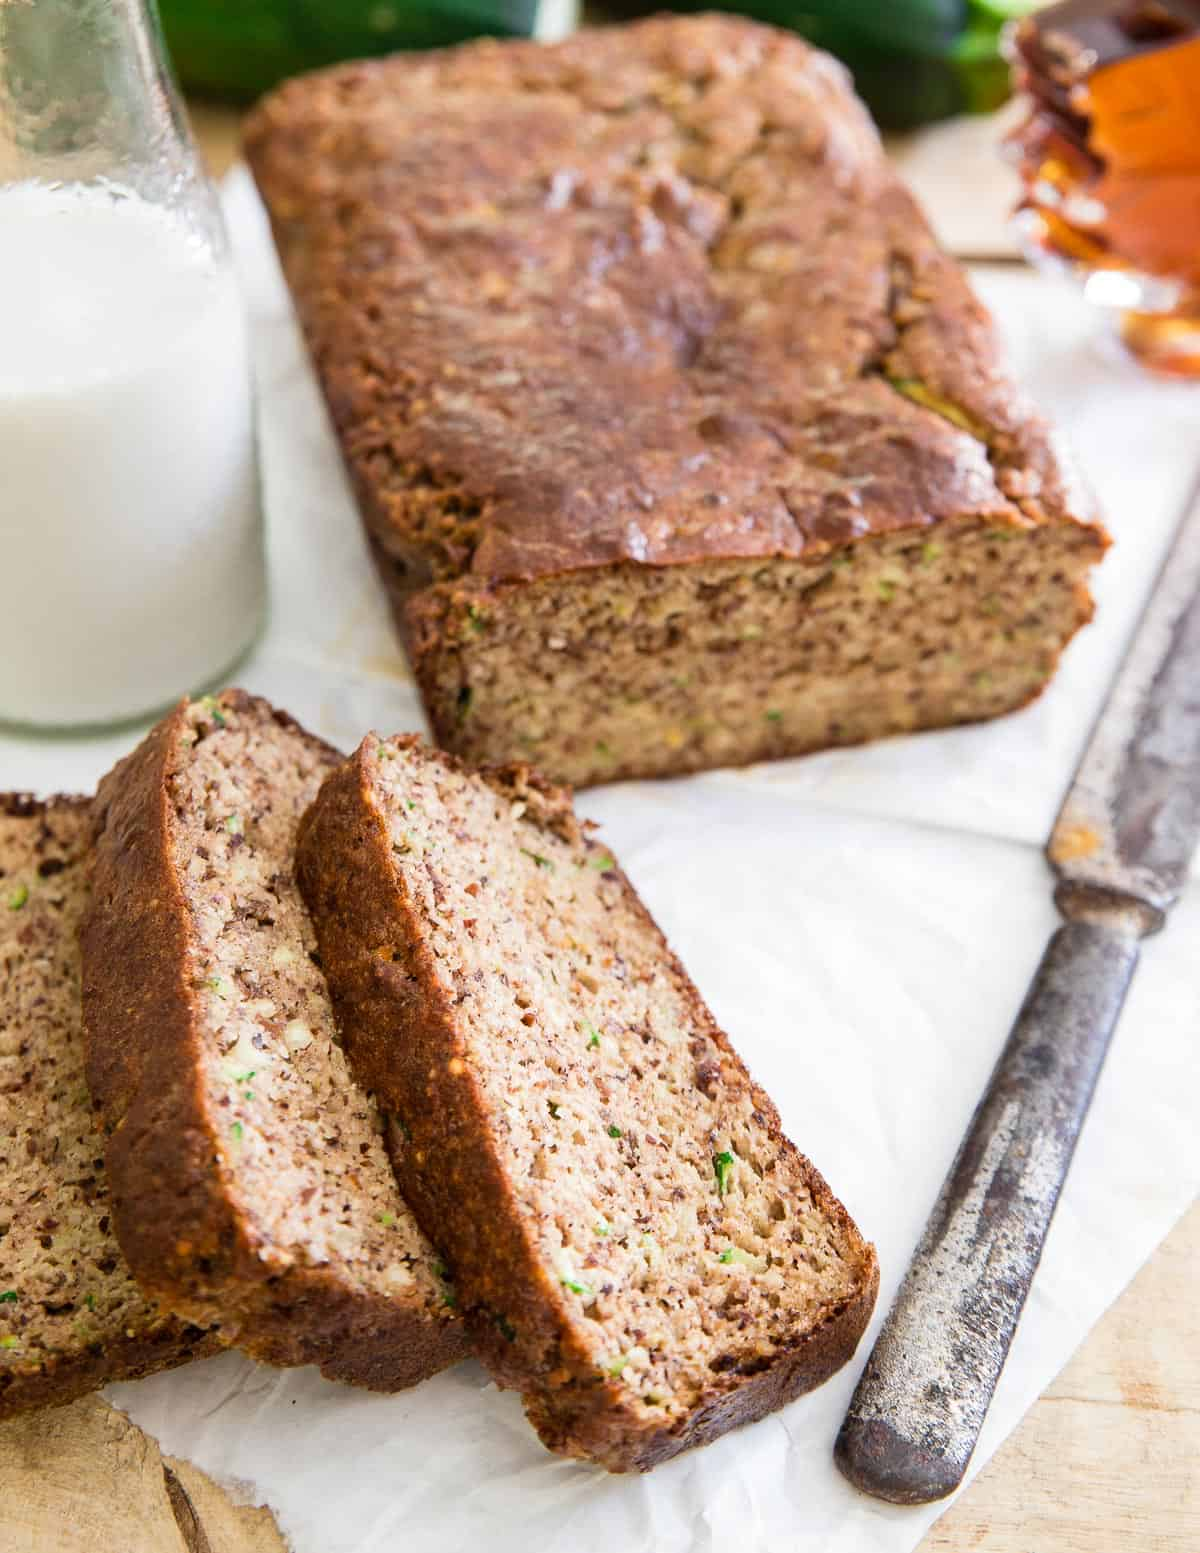 Use up zucchini in this paleo almond zucchini bread recipe perfect for late summer.